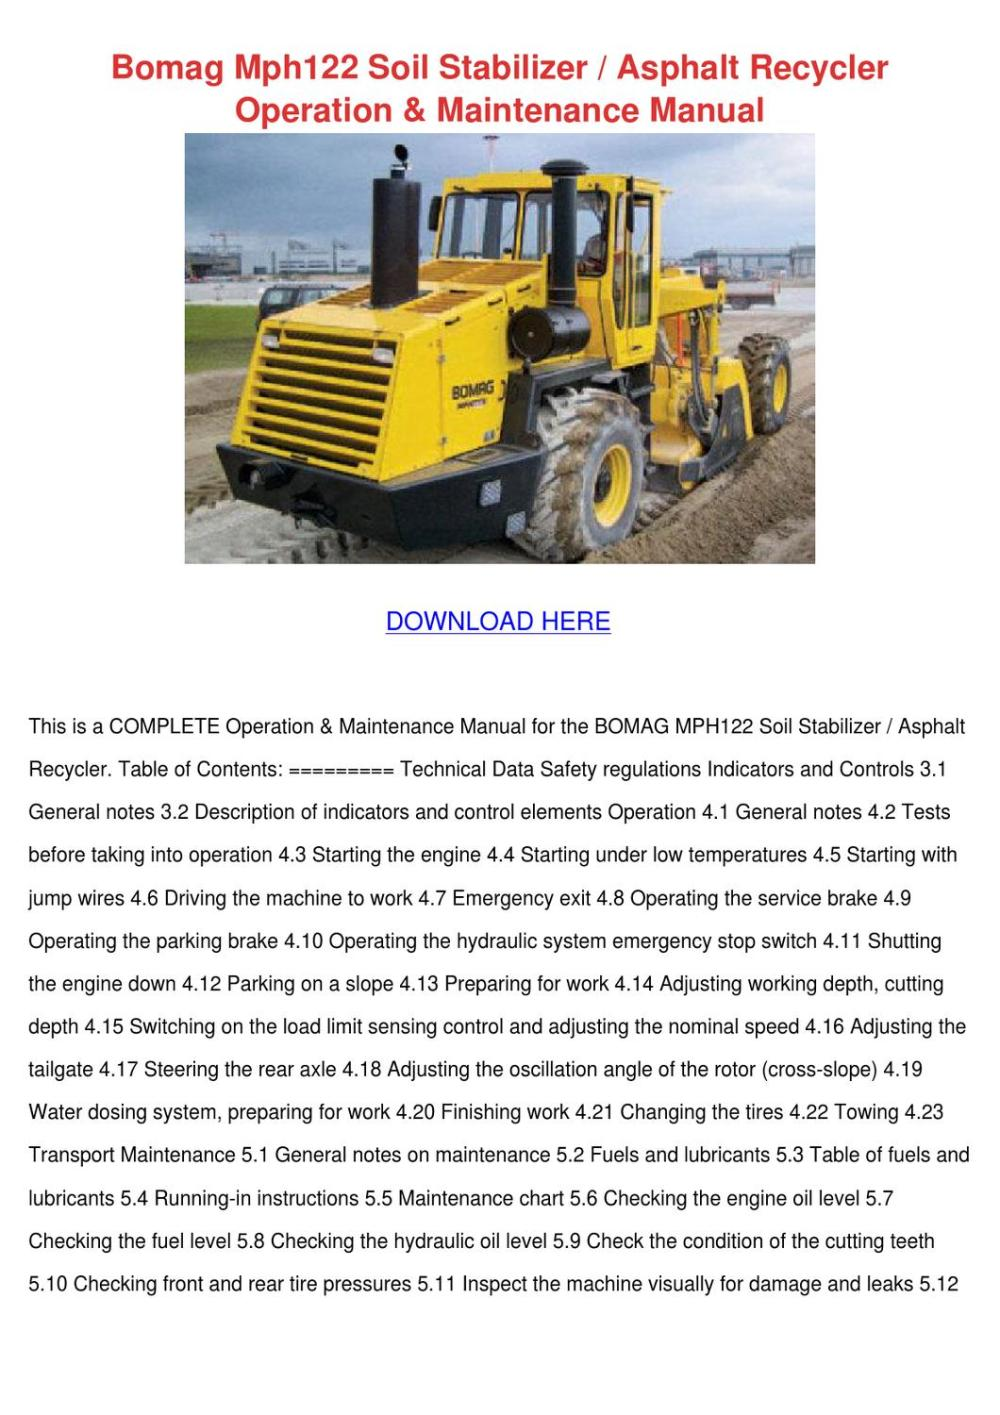 medium resolution of bomag mph122 soil stabilizer asphalt recycler by gitaflannery issuubomag mph122 soil stabilizer asphalt recycler